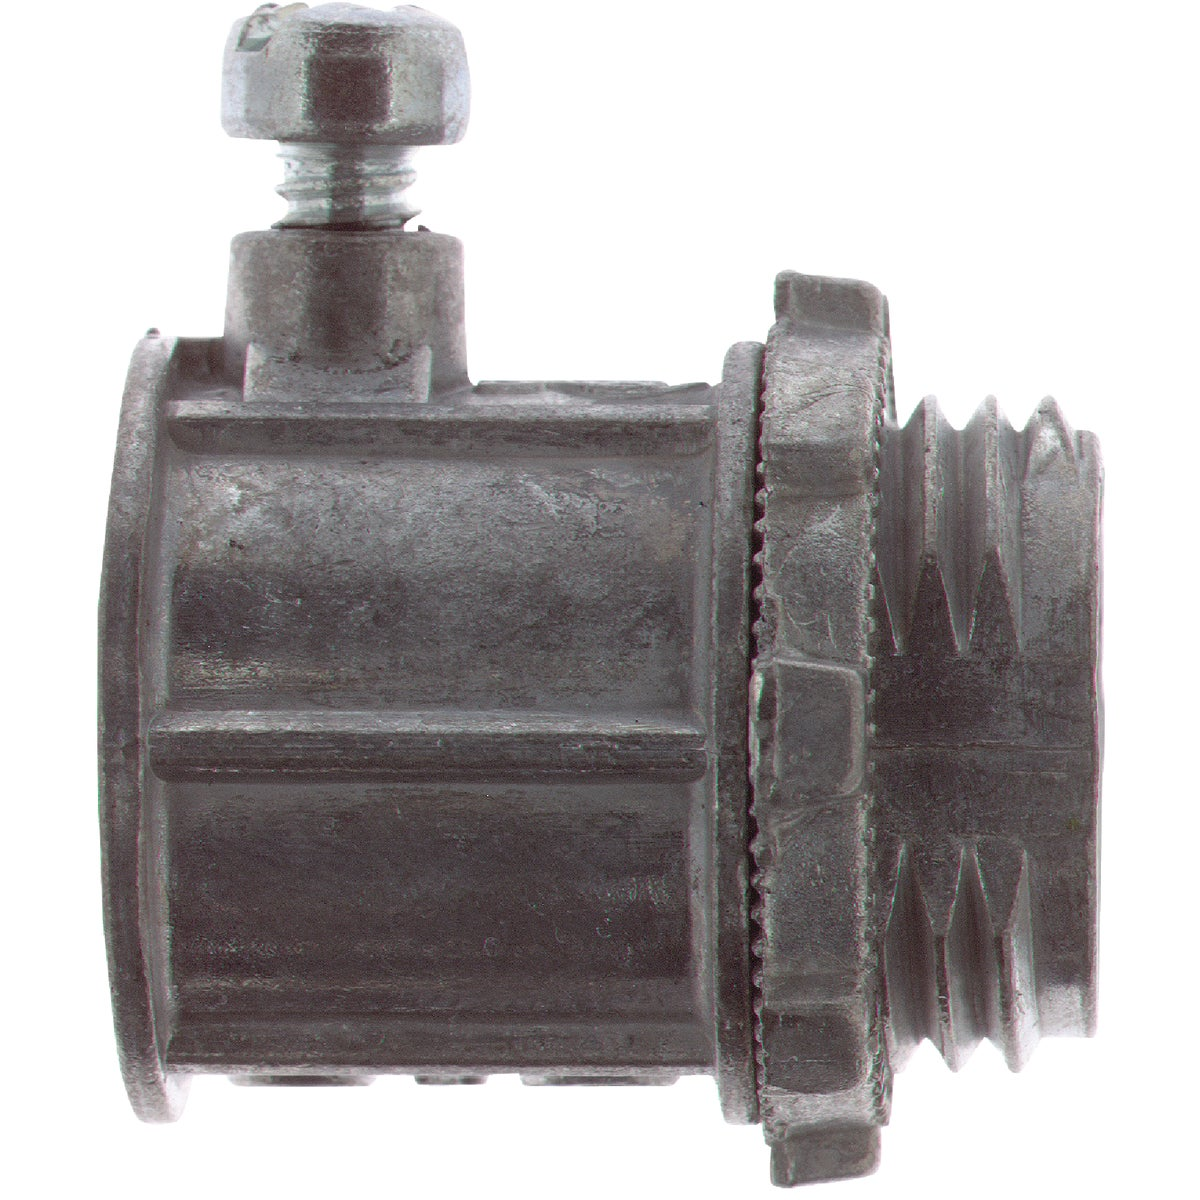 "1/2"" EMT CONNECTOR - TC221SC1 by Thomas & Betts"